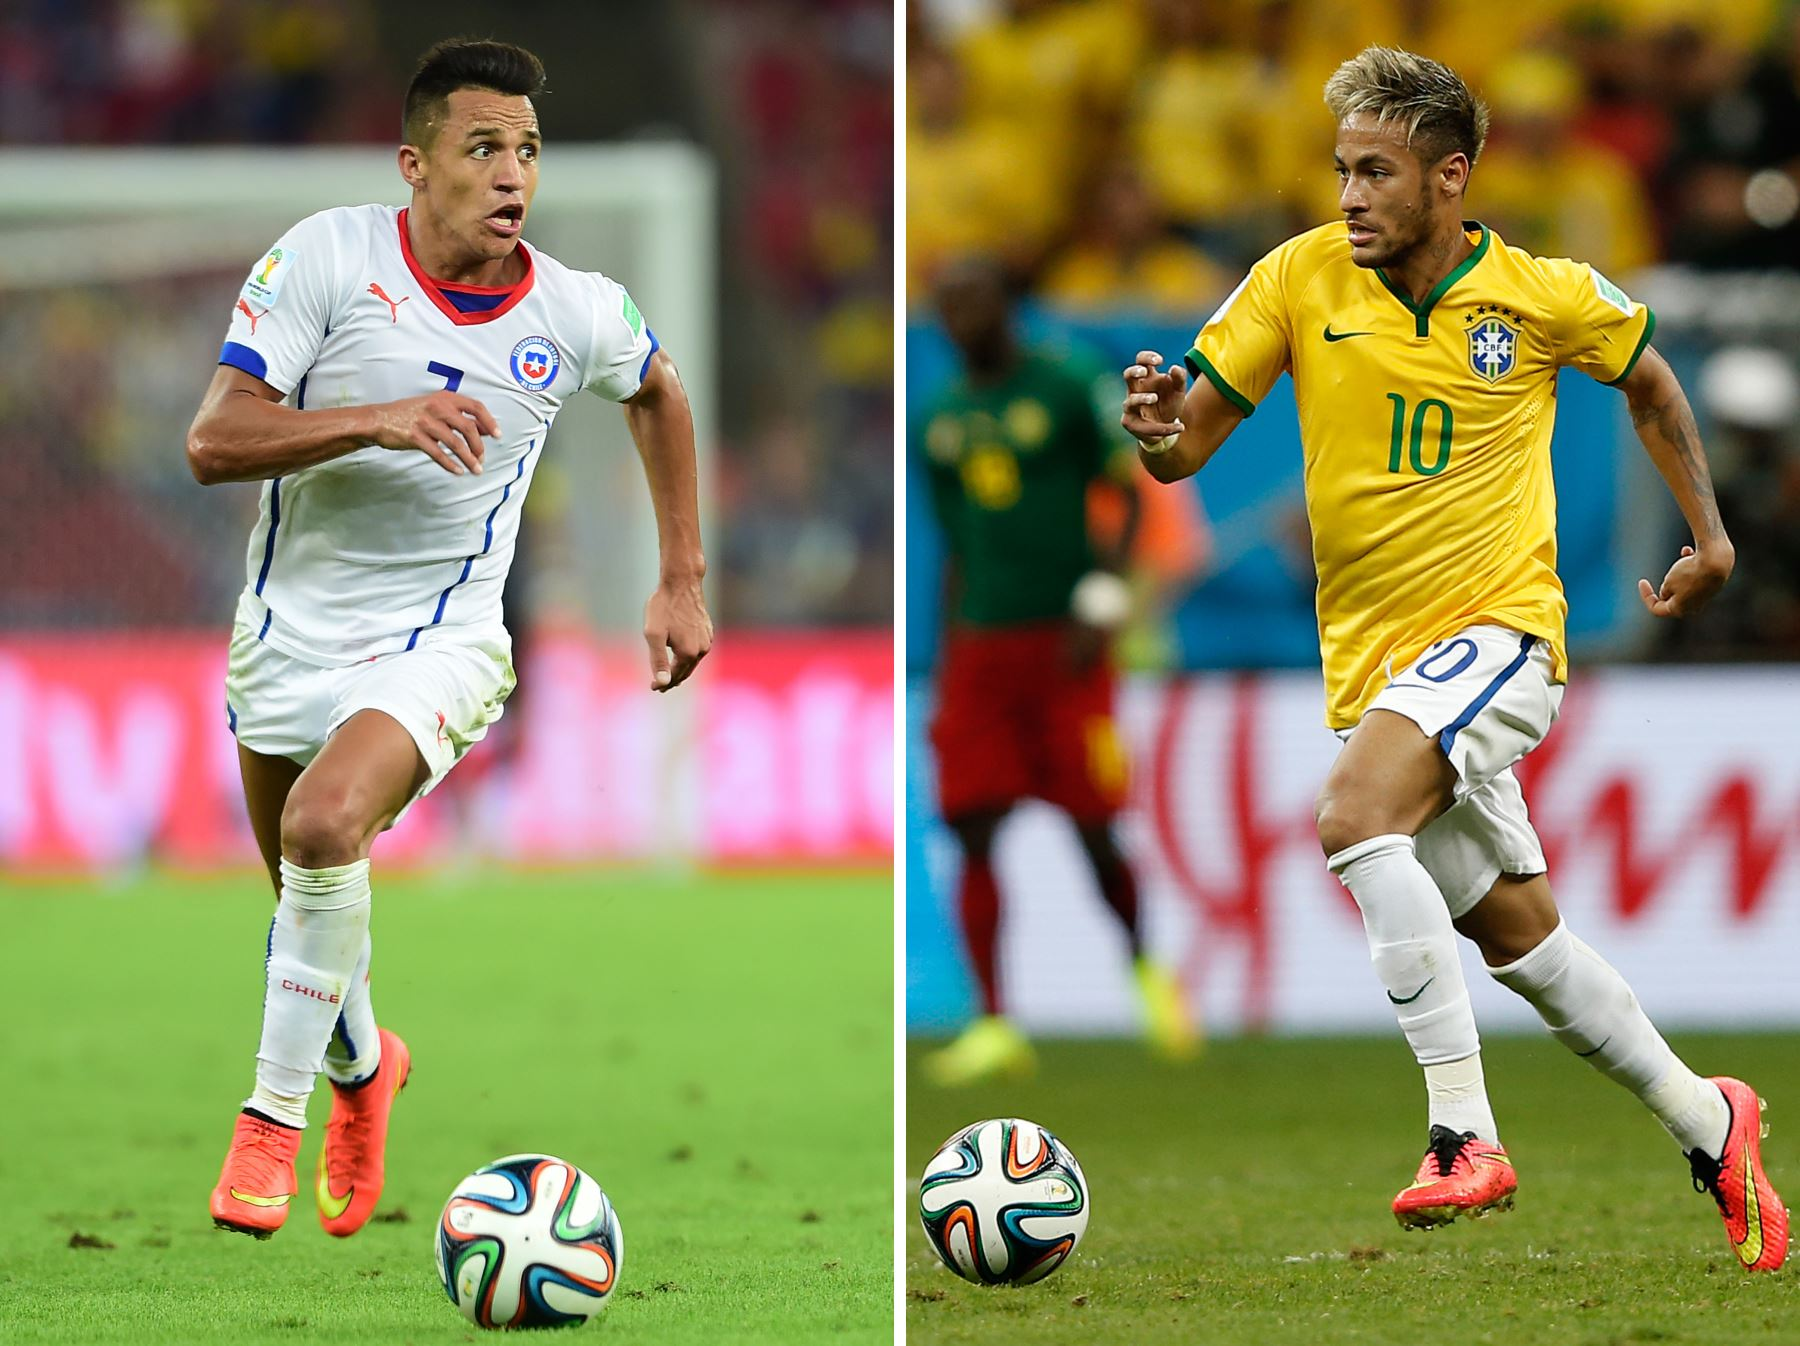 Brasil-Chile match-up. Photo: AFP